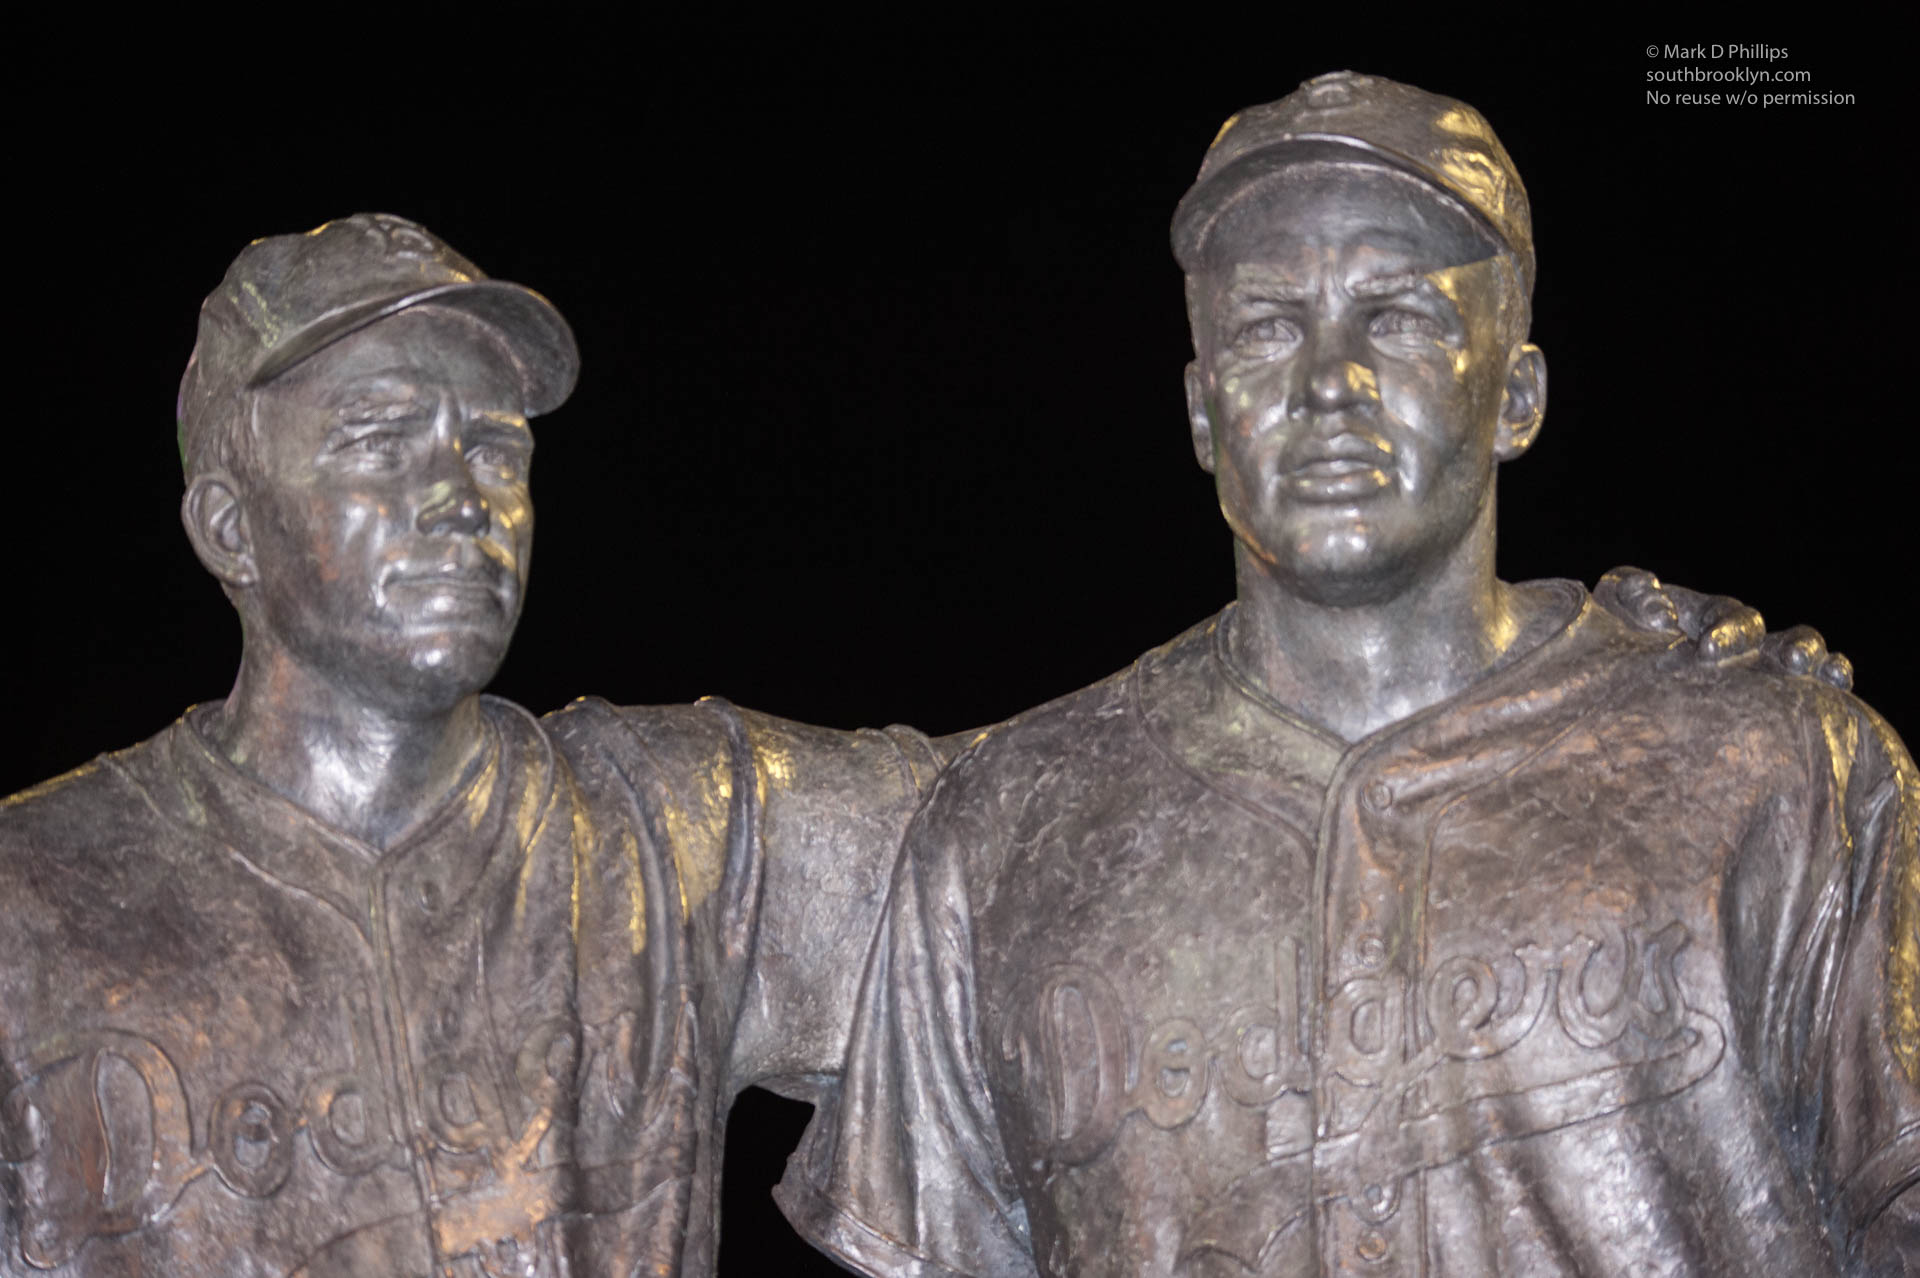 PeeWee Reese and Jackie Robinson statue in Coney Island stands outside the home of the Brooklyn Cyclones minor league stadium. ©Mark D Phillips